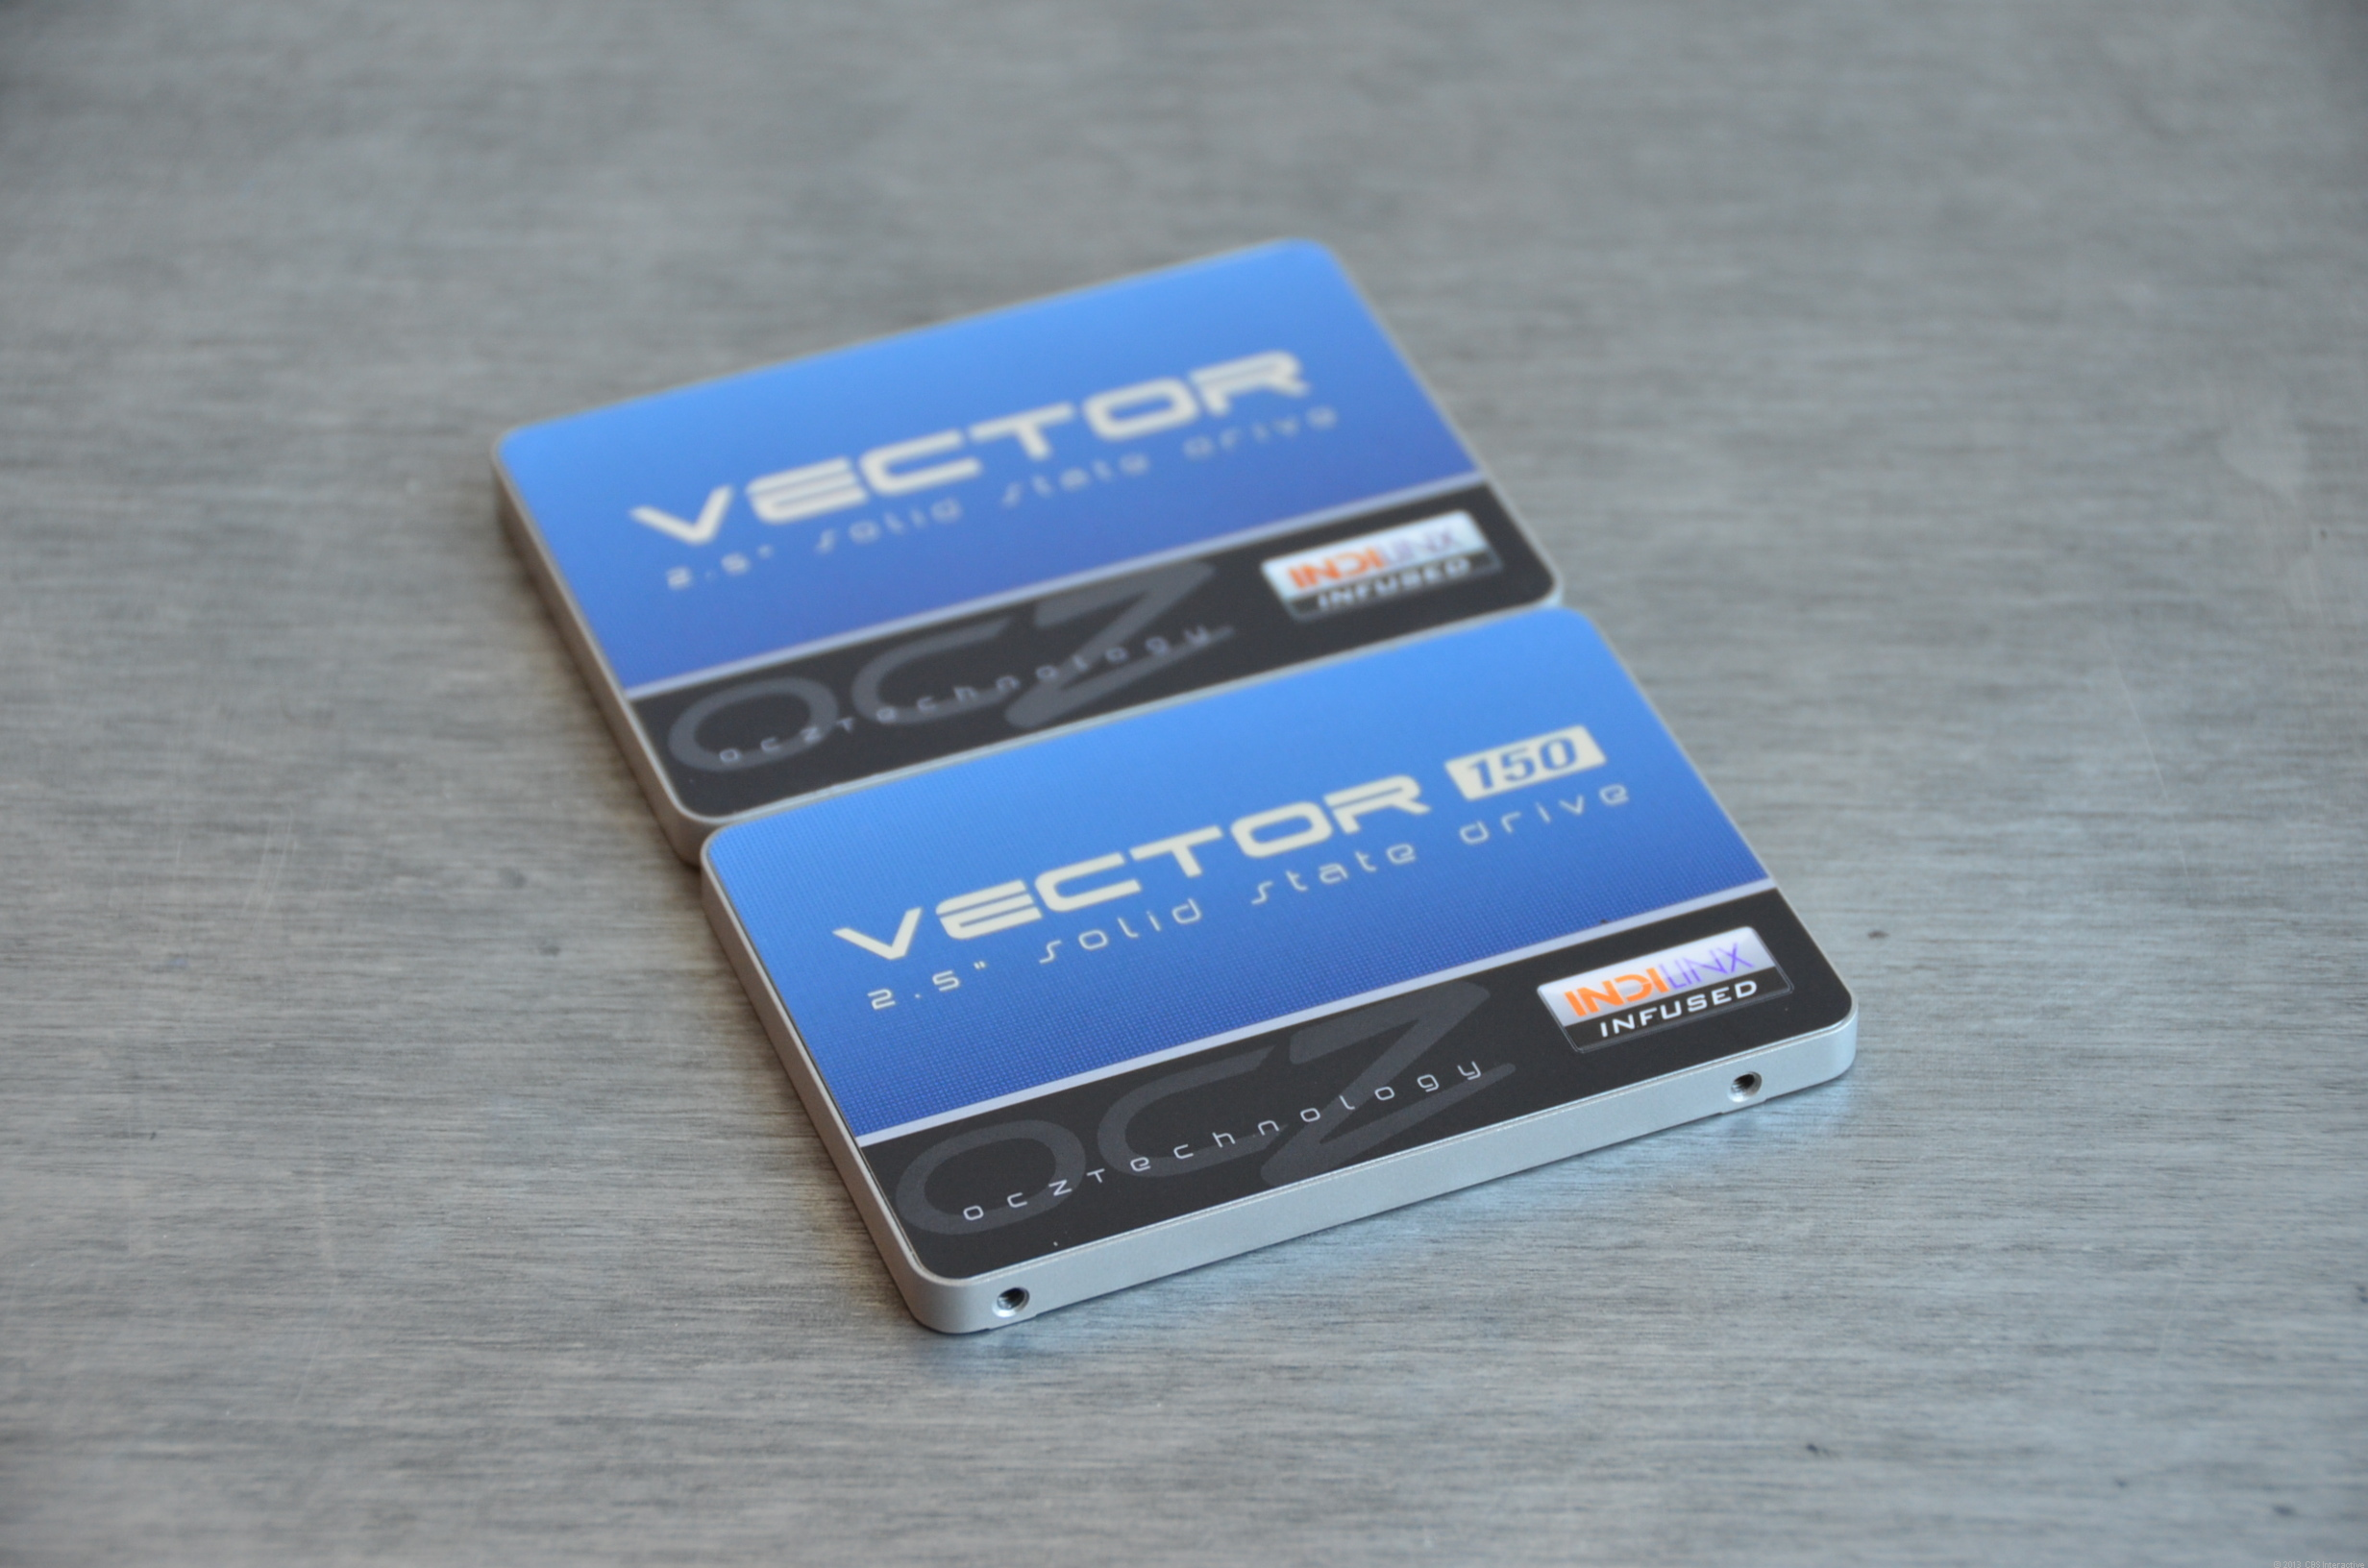 The new Vector 150 looks almost exactly the same as the original Vector drive that came out almost a year ago.